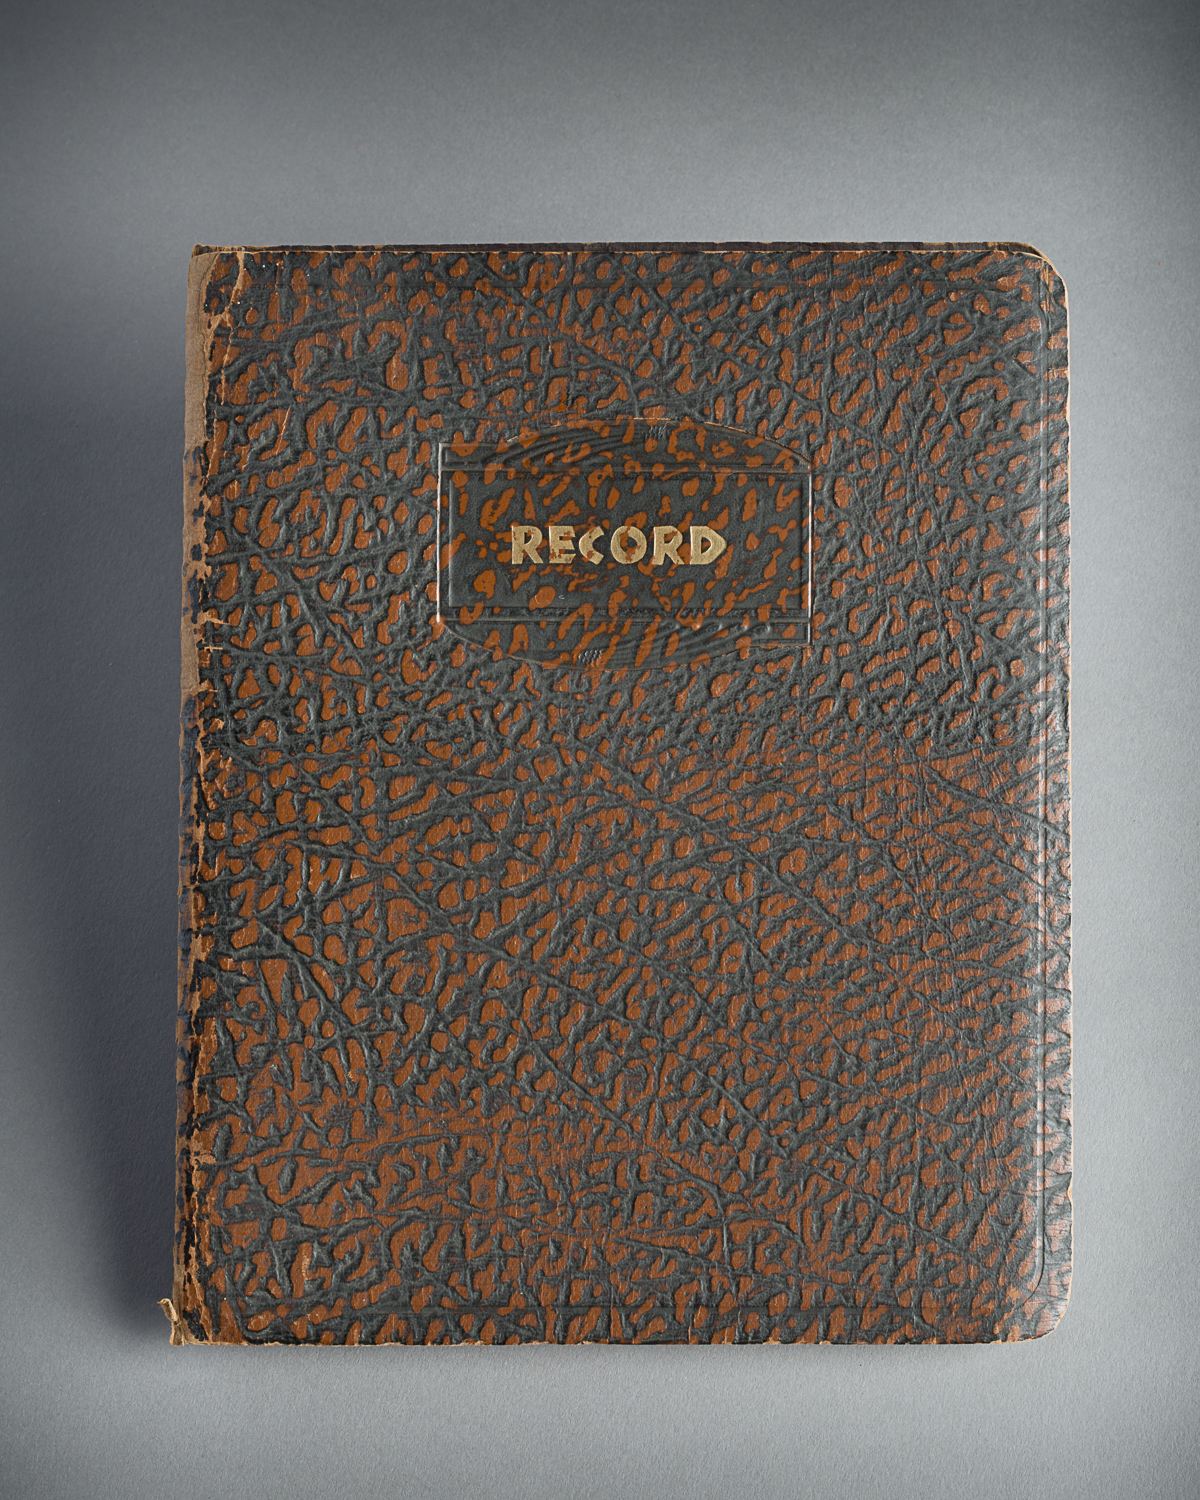 Diary that belonged to Sydney Howard Selig. He wrote it between June and October 1941 when he was a guard in an internment camp near Sherbrooke, Quebec. (Photo: Peter Berra)